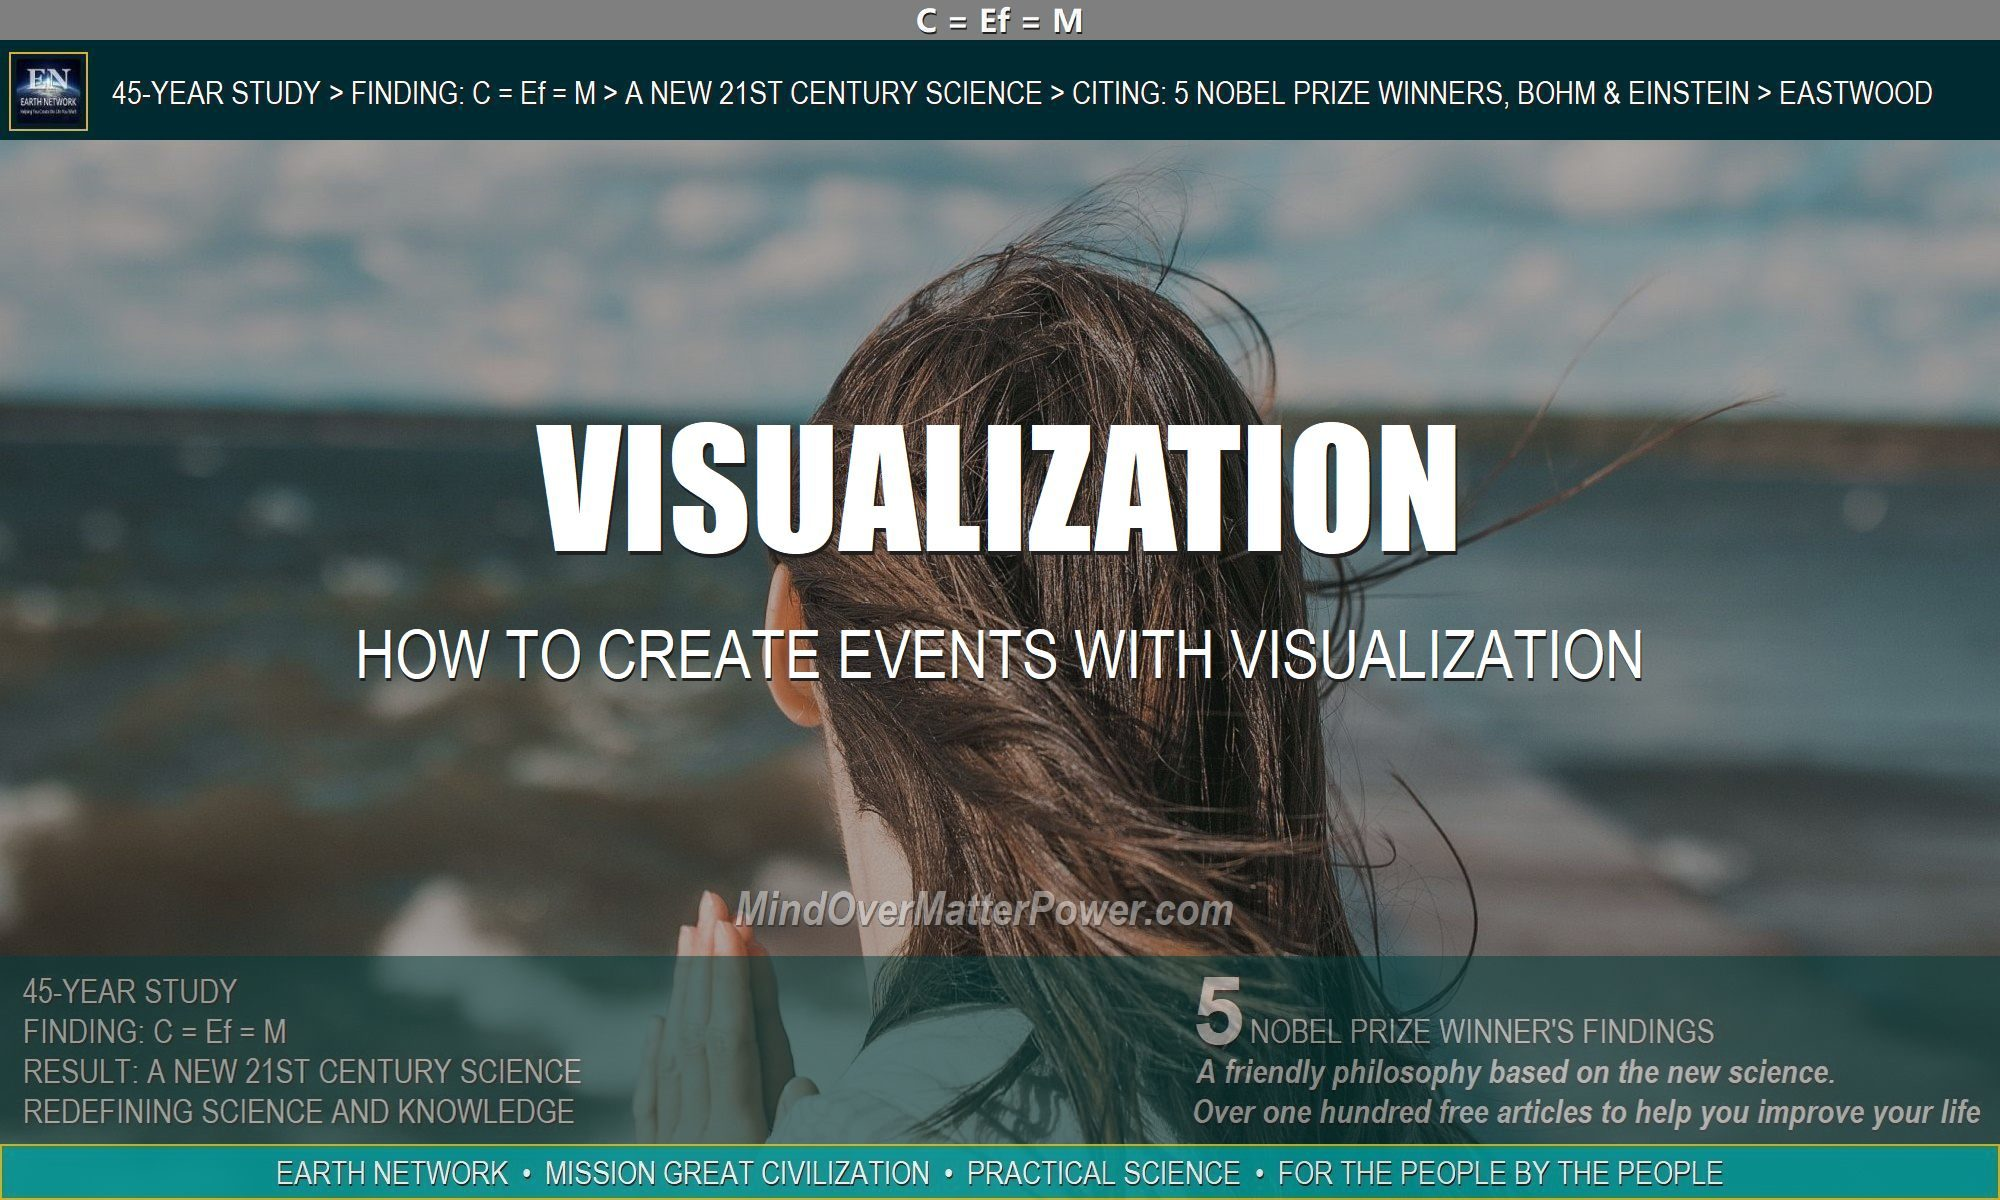 Woman visualizing. Show how to create future events with visualization.